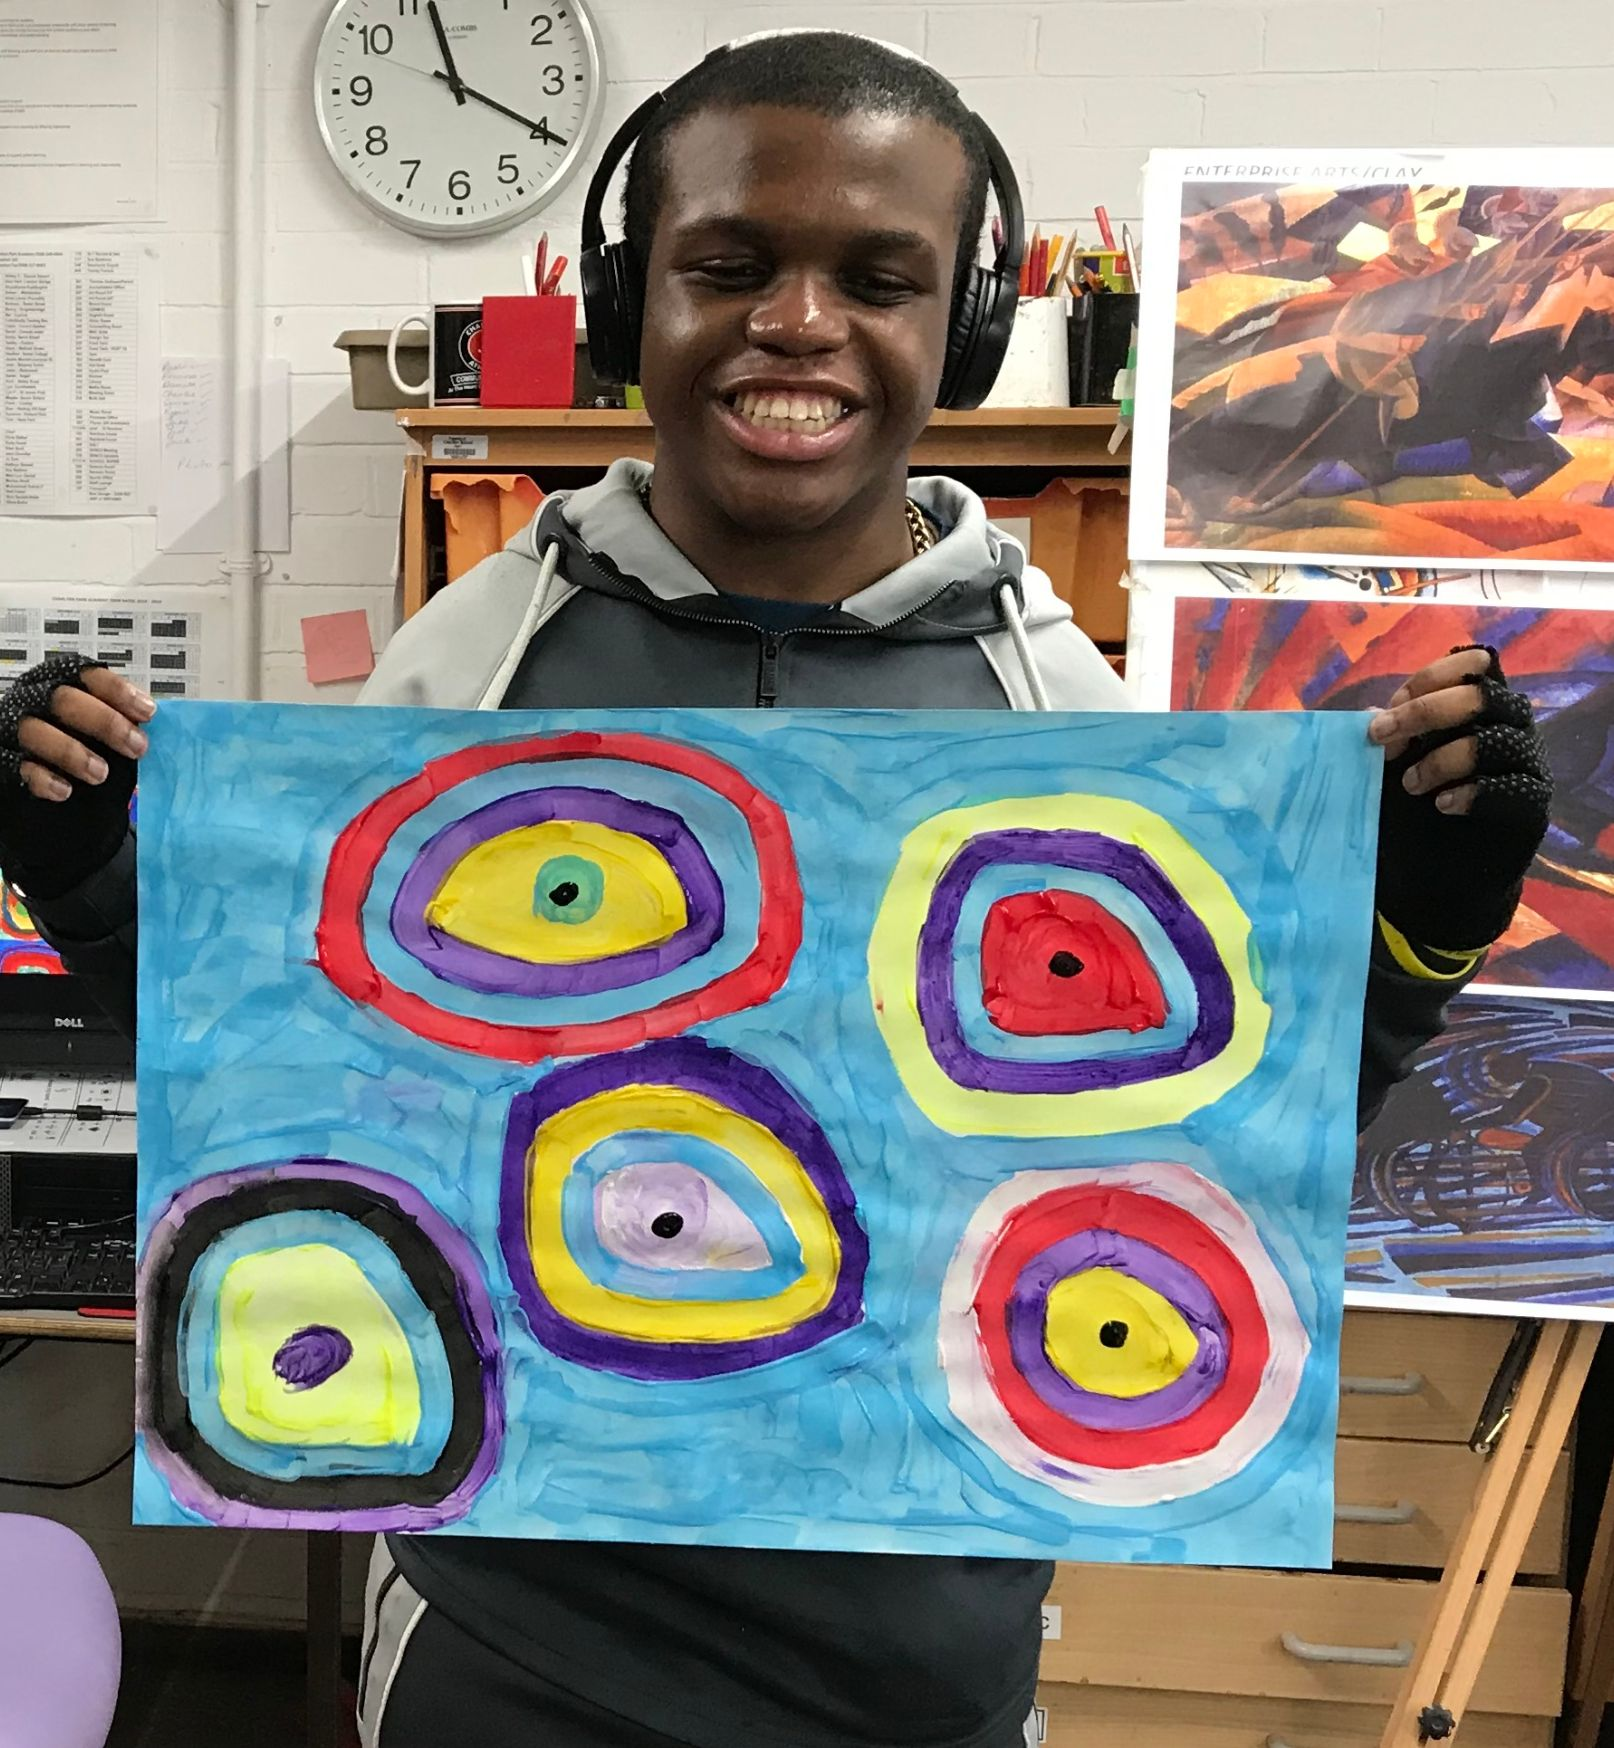 Young man holding up art work